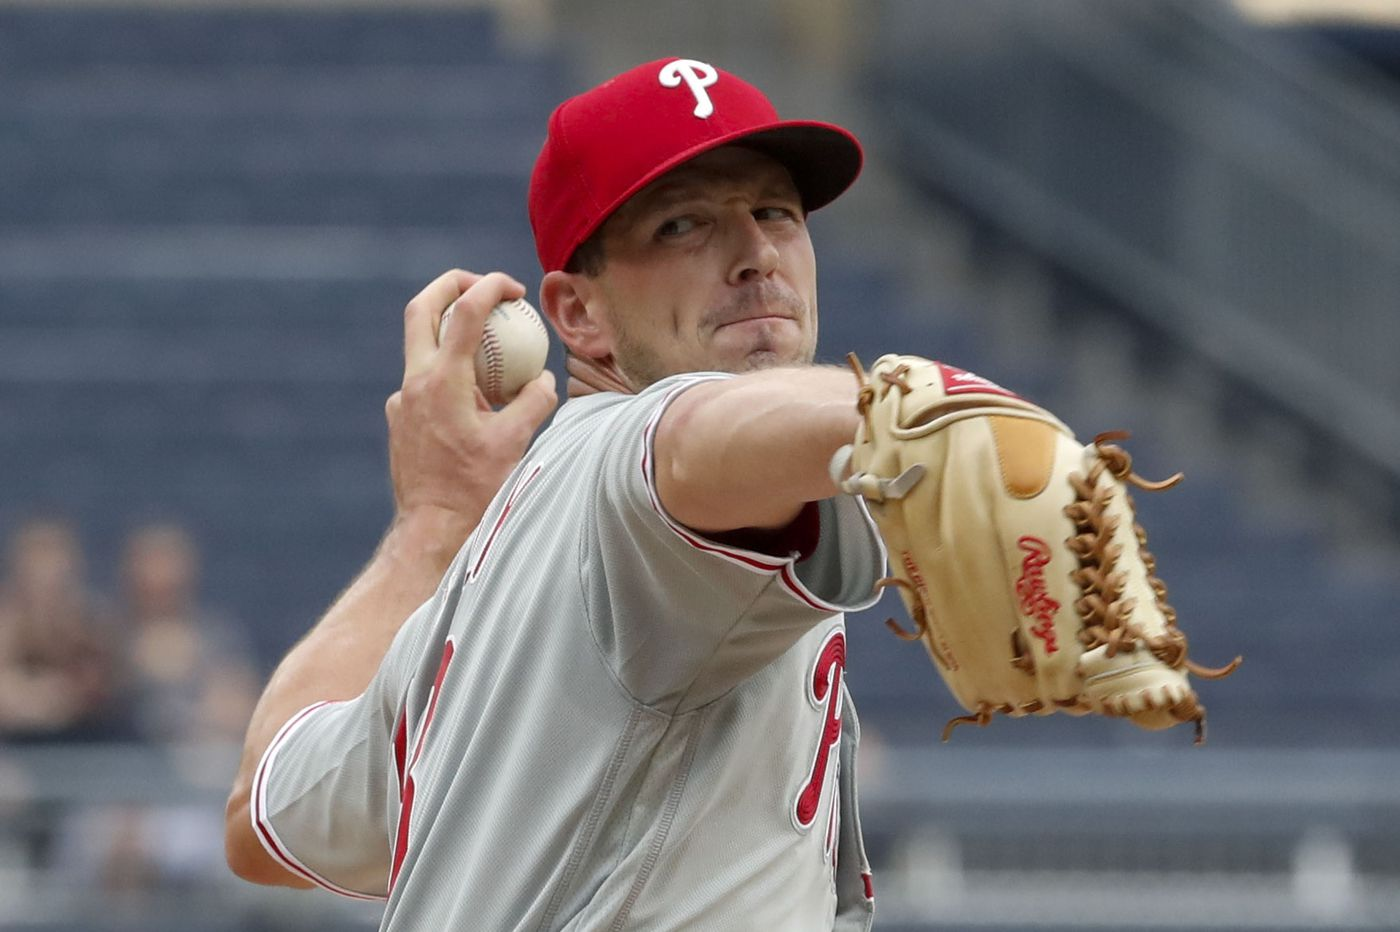 Drew Smyly's funky curveball gives Phillies some hope